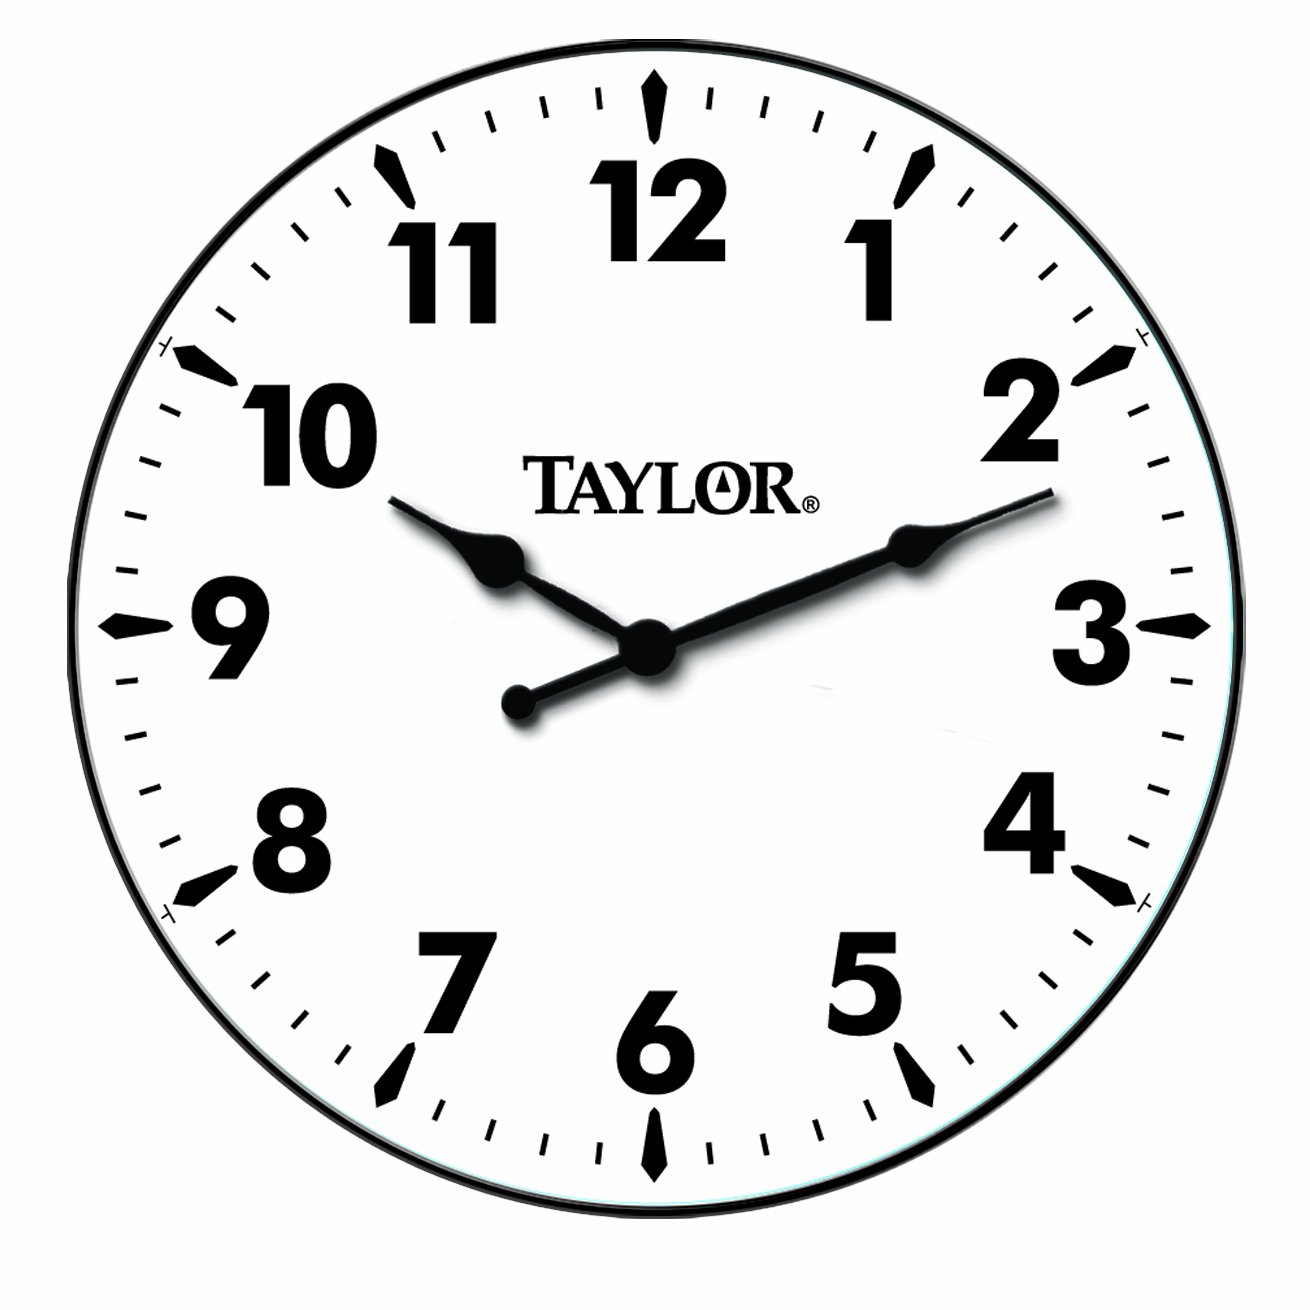 Amazon.com: Taylor Precision Products Patio Clock (12 Inch): Home U0026 Kitchen